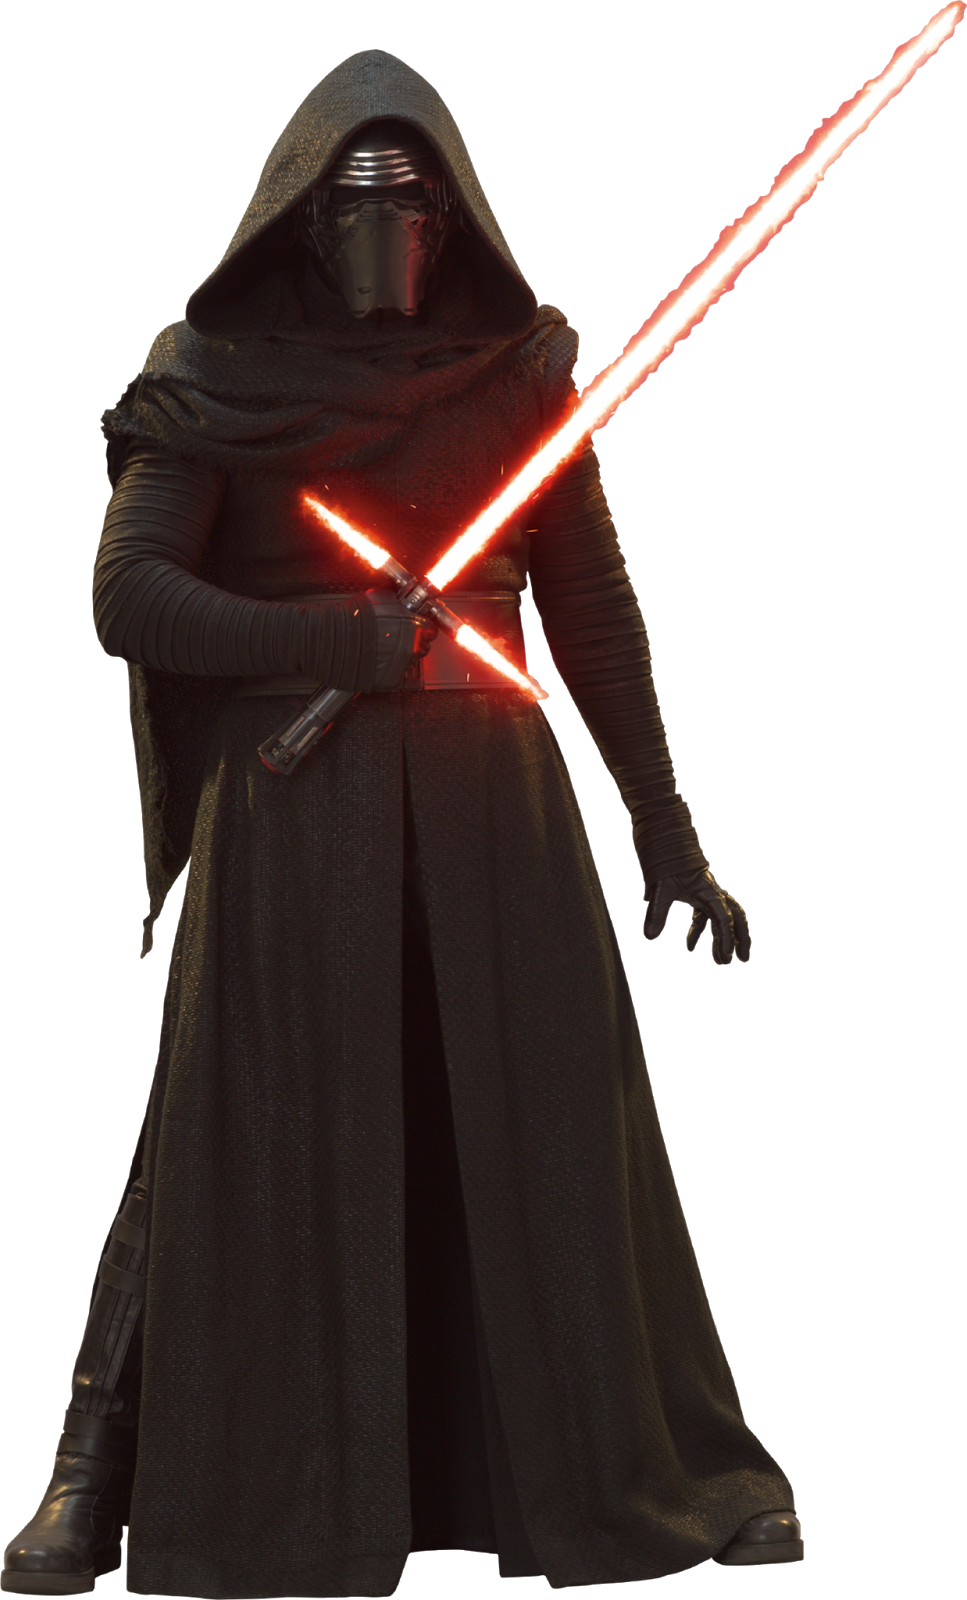 Get Star Wars Png Pictures